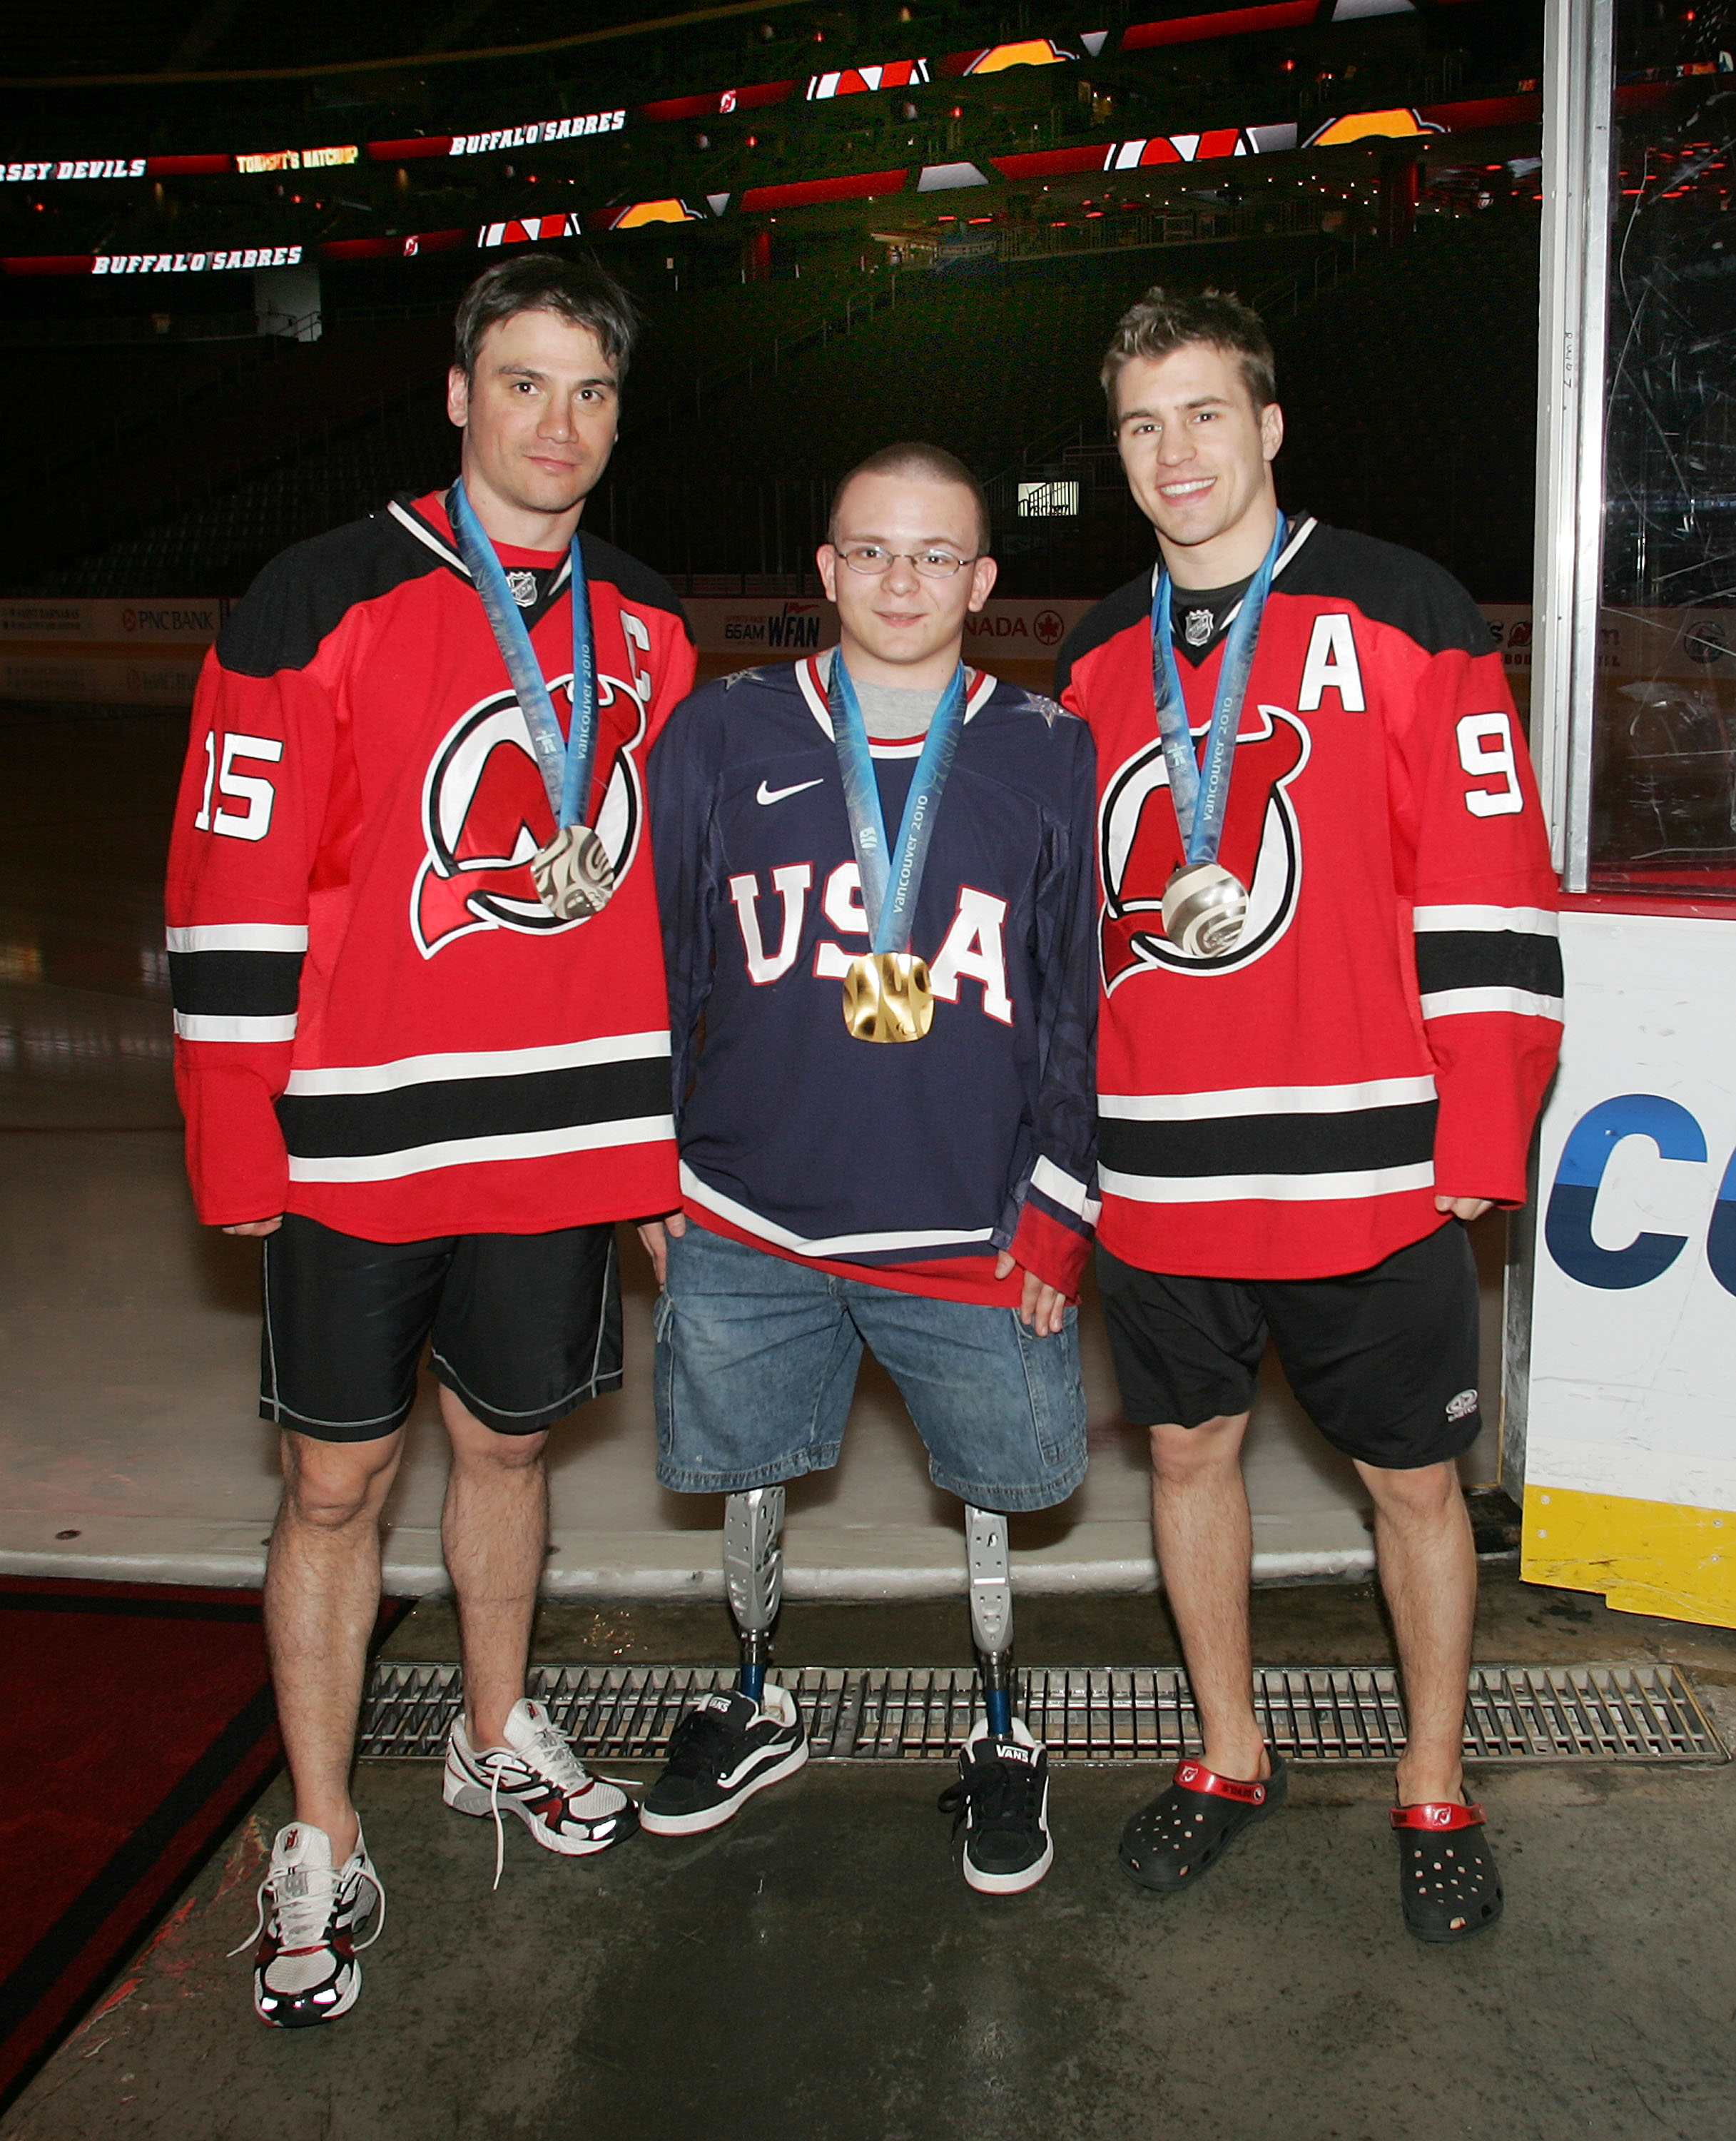 NEWARK, NJ - APRIL 11: Josh Pauls, a member of the gold medal United States paralympic sled hockey team, poses with  Jamie Langenbrunner #15 and Zach Parise #9 of the New Jersey Devils prior to the game against the Buffalo Sabres at the Prudential Center on April 11, 2010 in Newark, New Jersey. (Photo by Andy Marlin/NHLI via Getty Images)